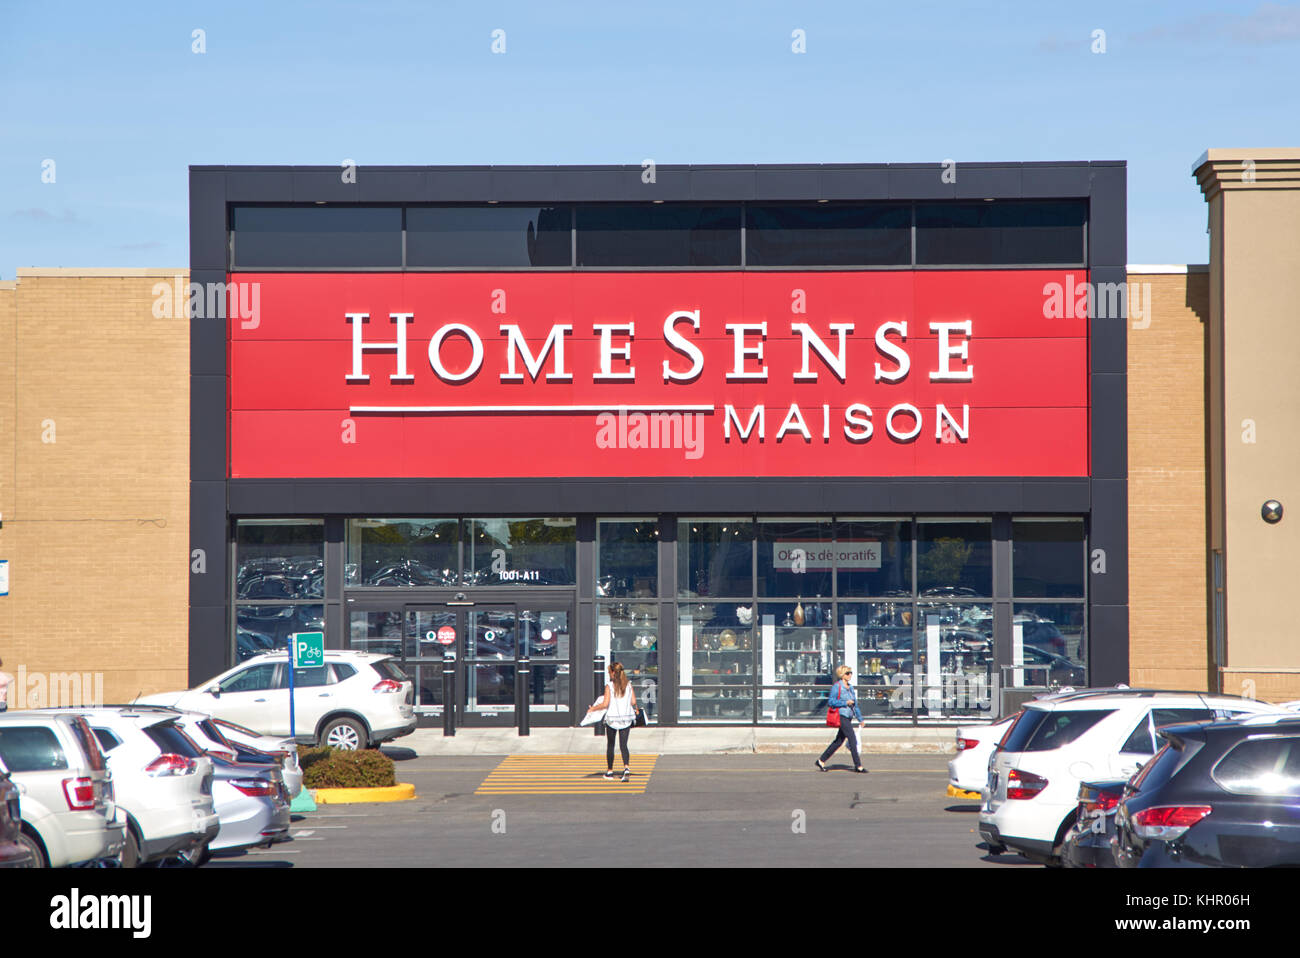 Canadian Stores Homesense Stock Photos And Homesense Stock Images Alamy